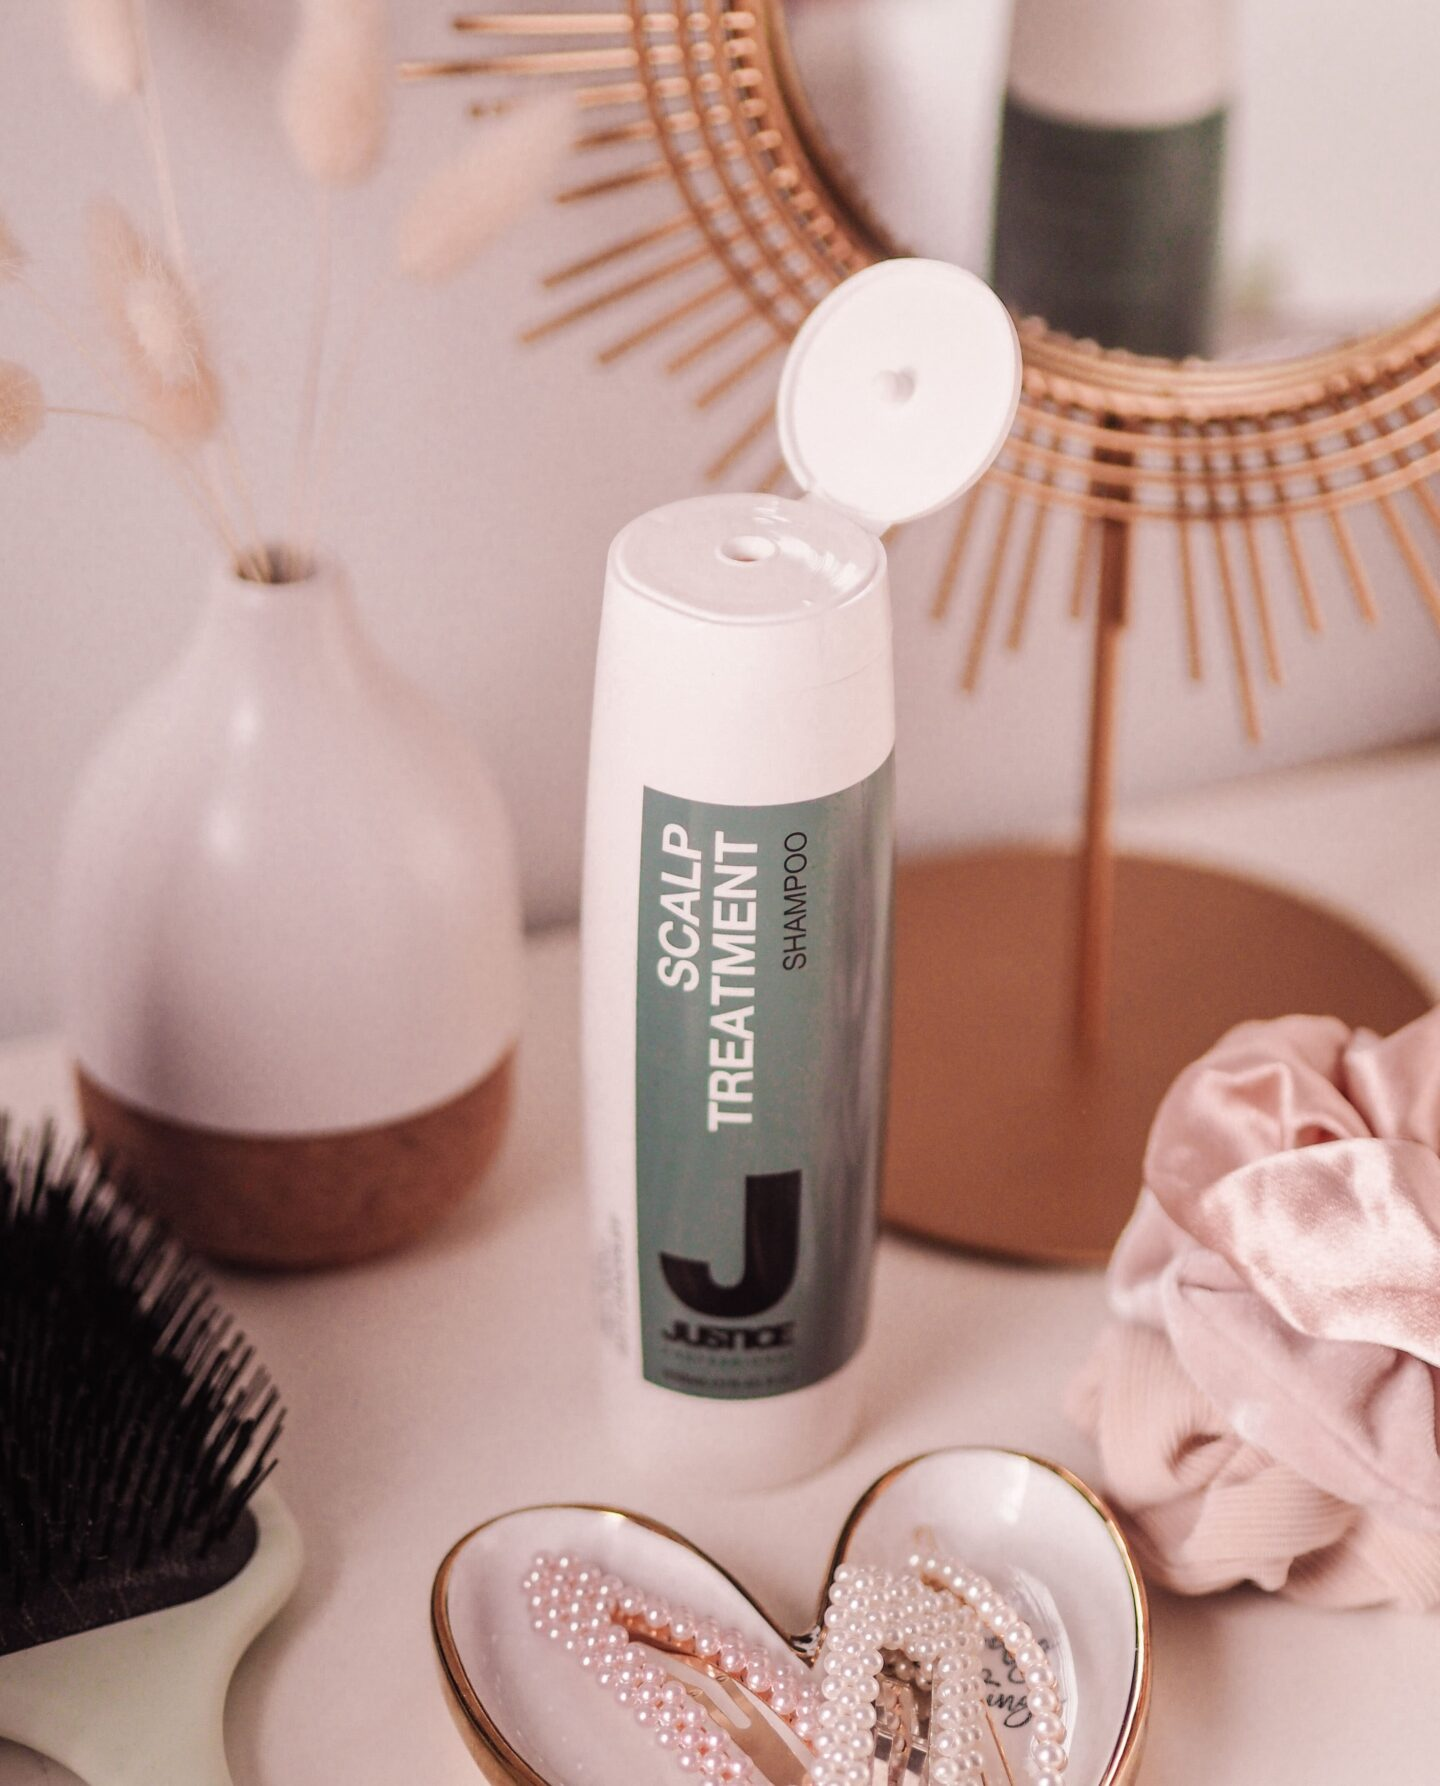 Justice Professional haircare review